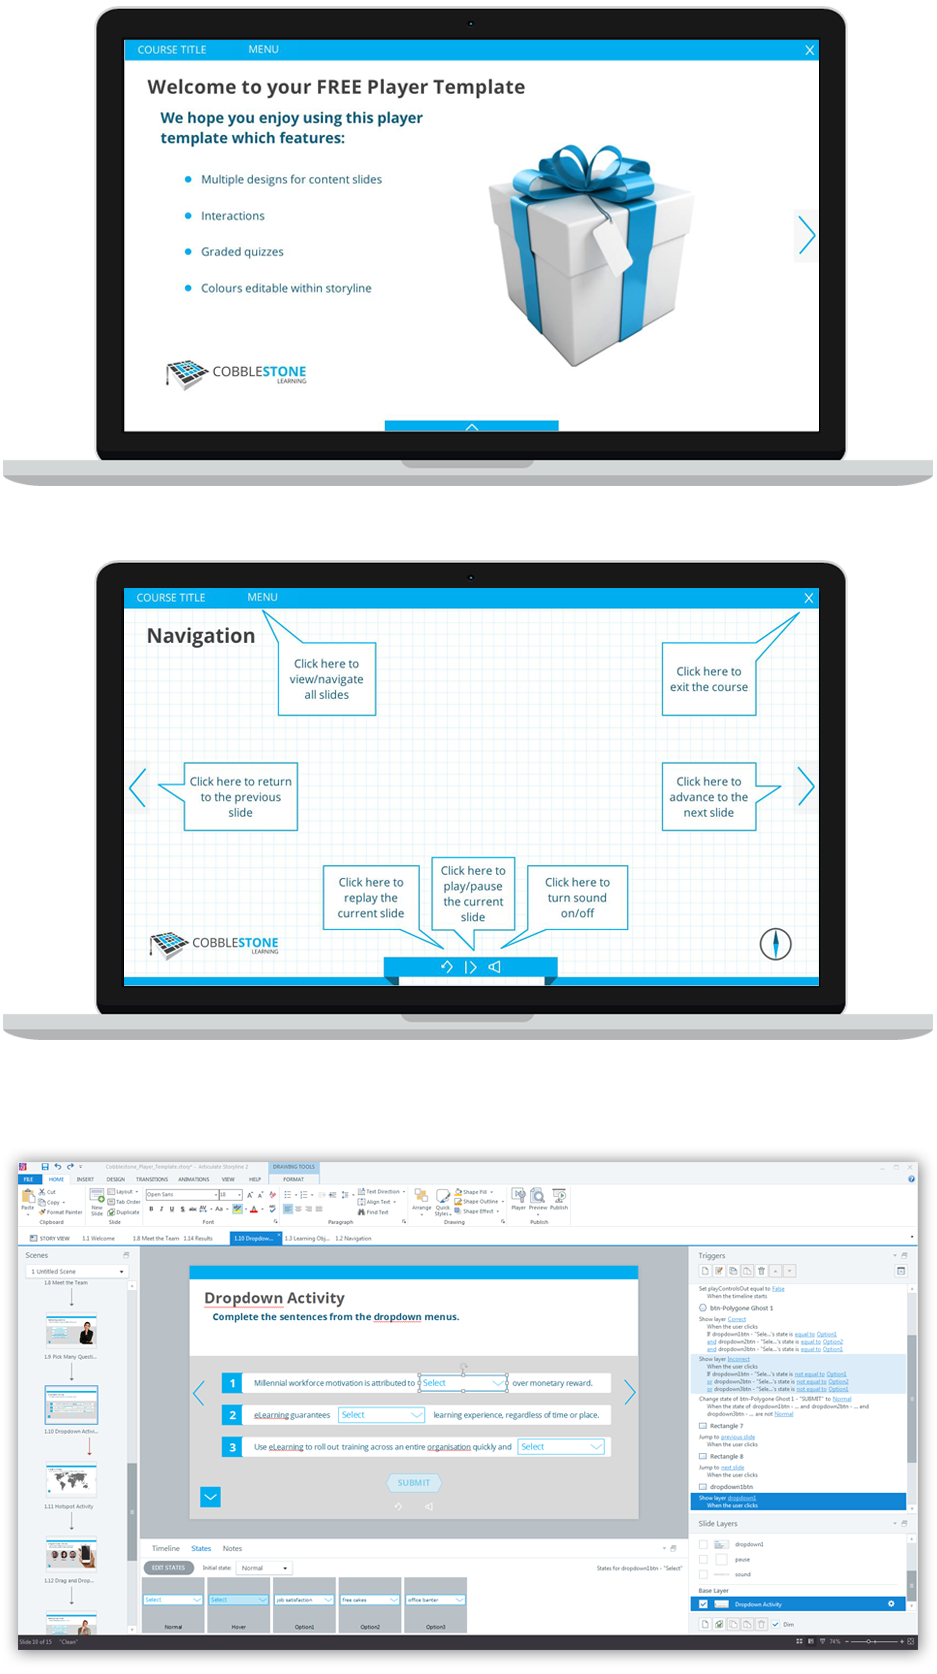 Free Storyline 2 player template and slide deck from Cobblestone ...